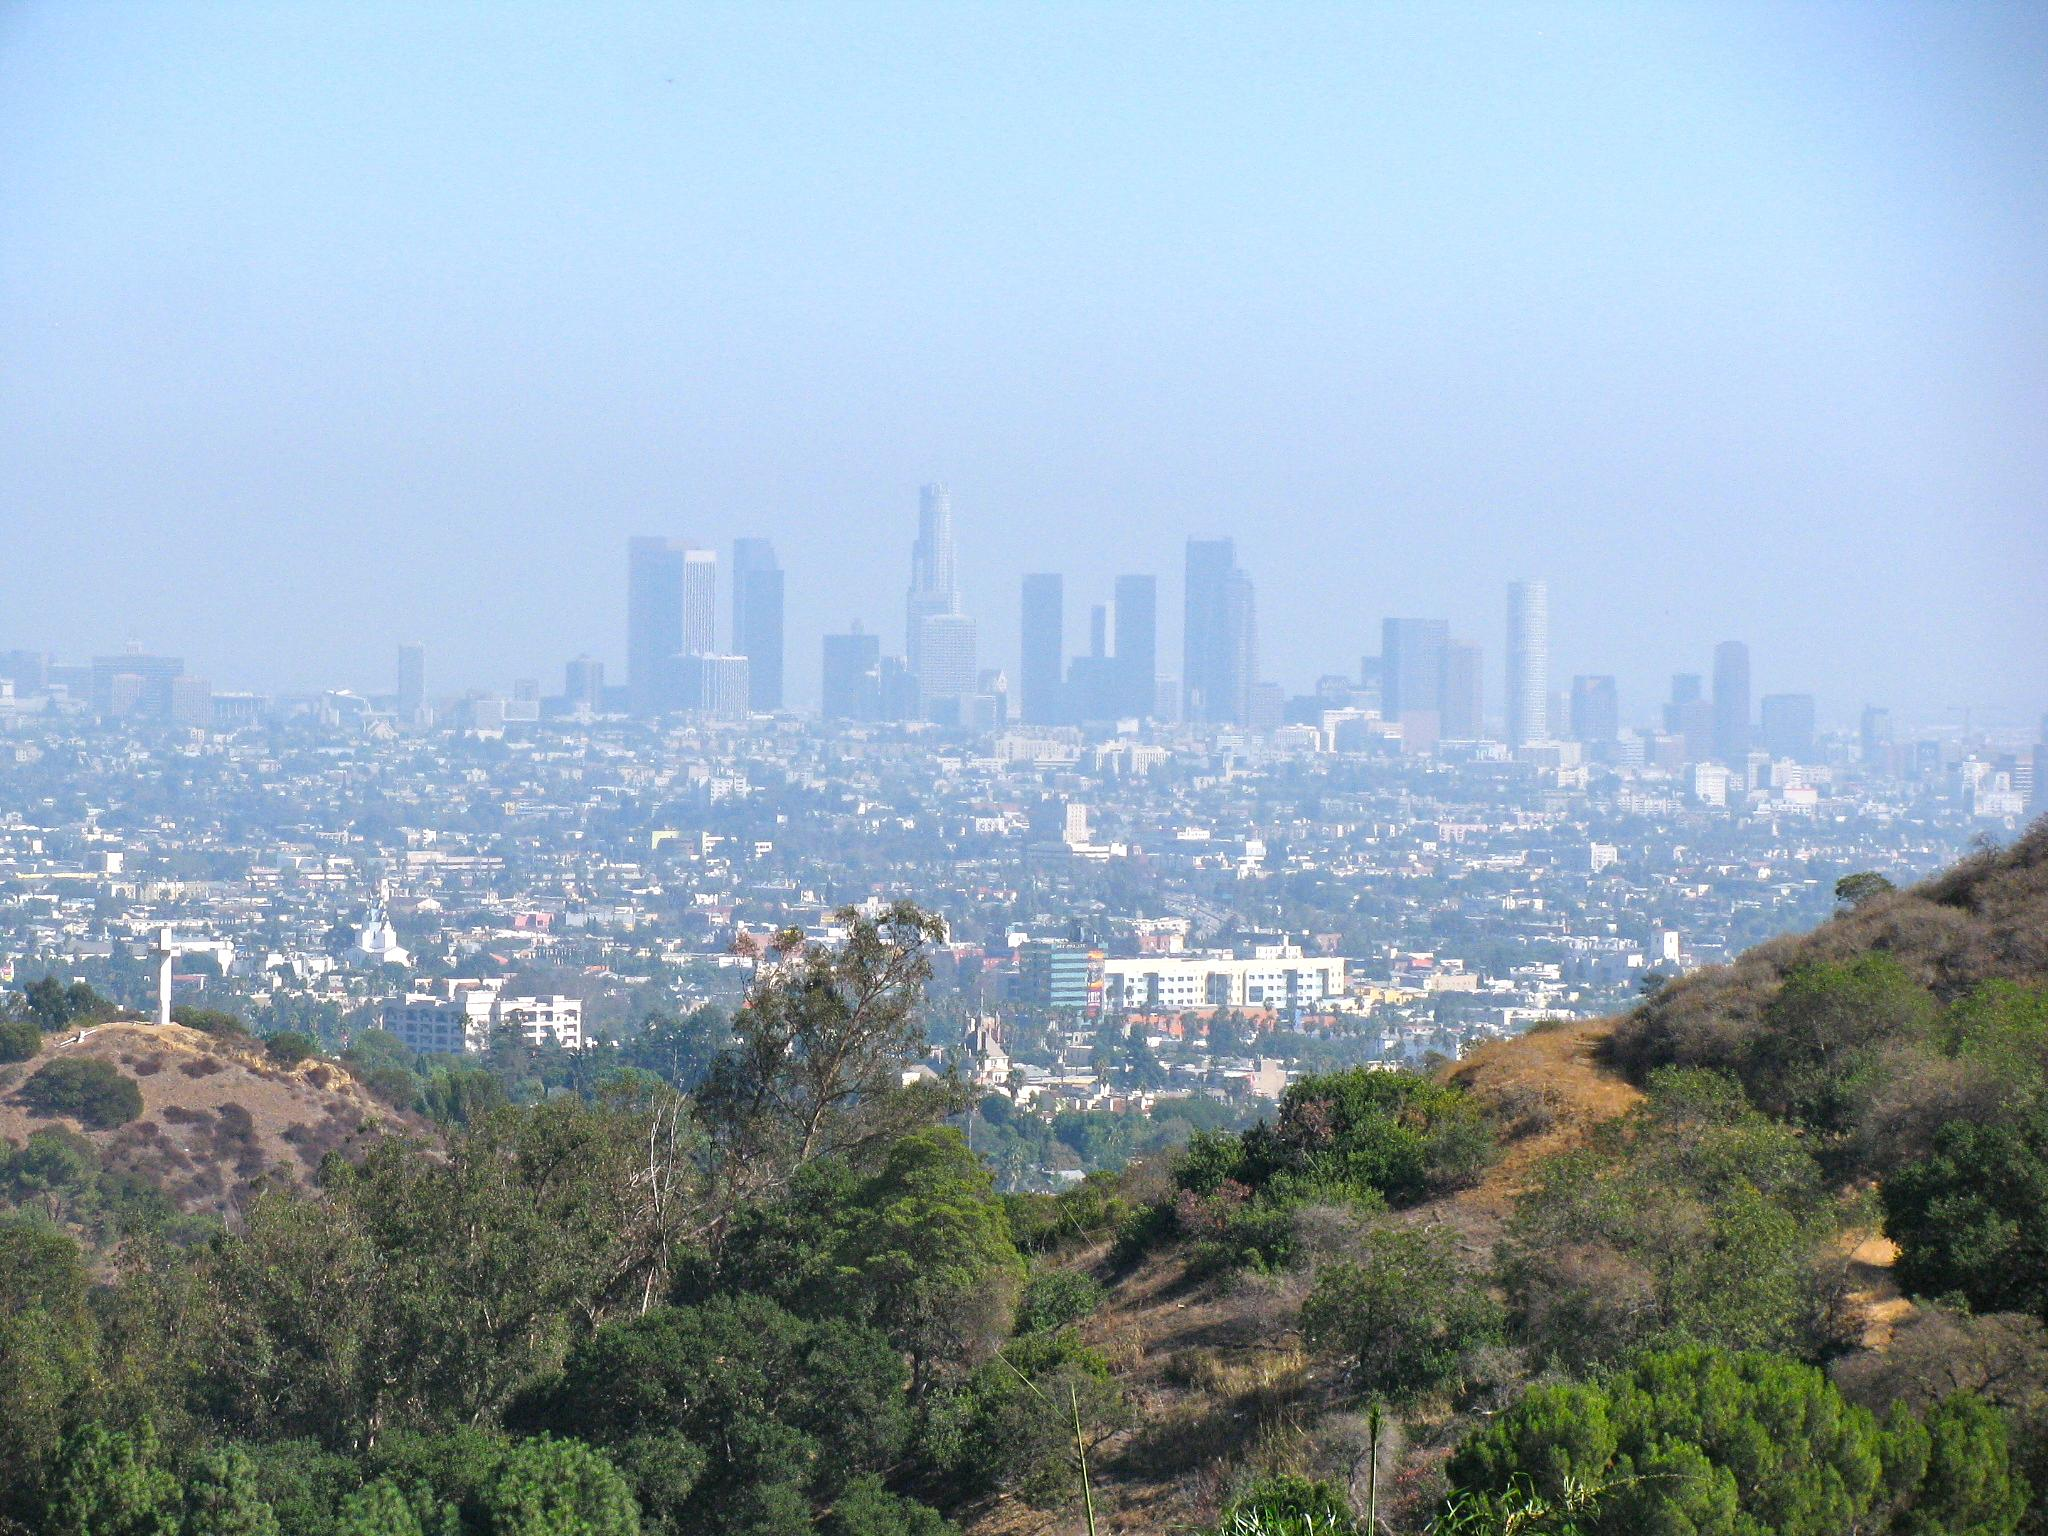 Los Angeles, CA by ramses2009